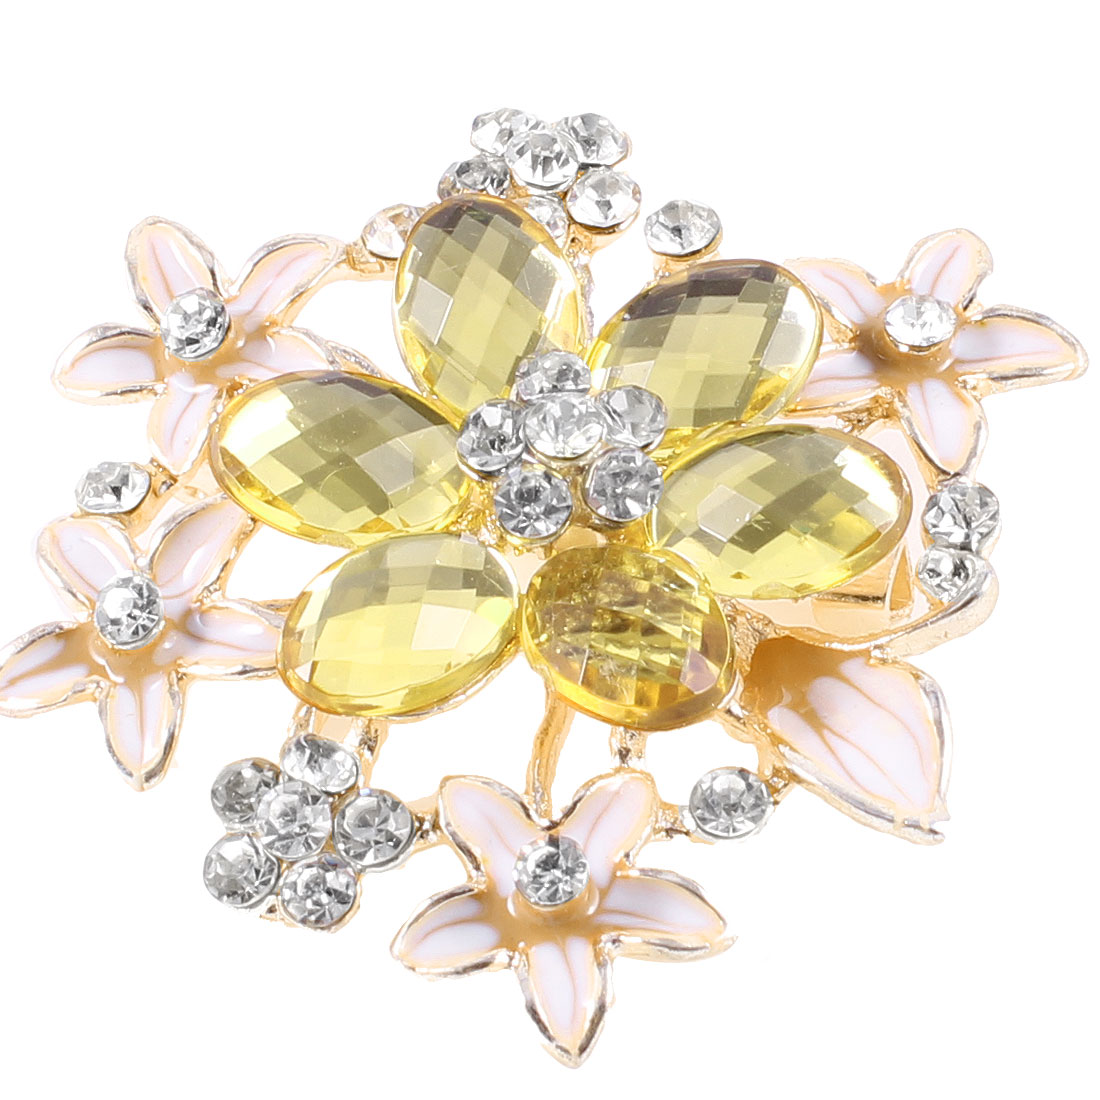 Ladies Rhinestone Detailing Flower Shaped Clothing Brooch Yellow Silver Tone